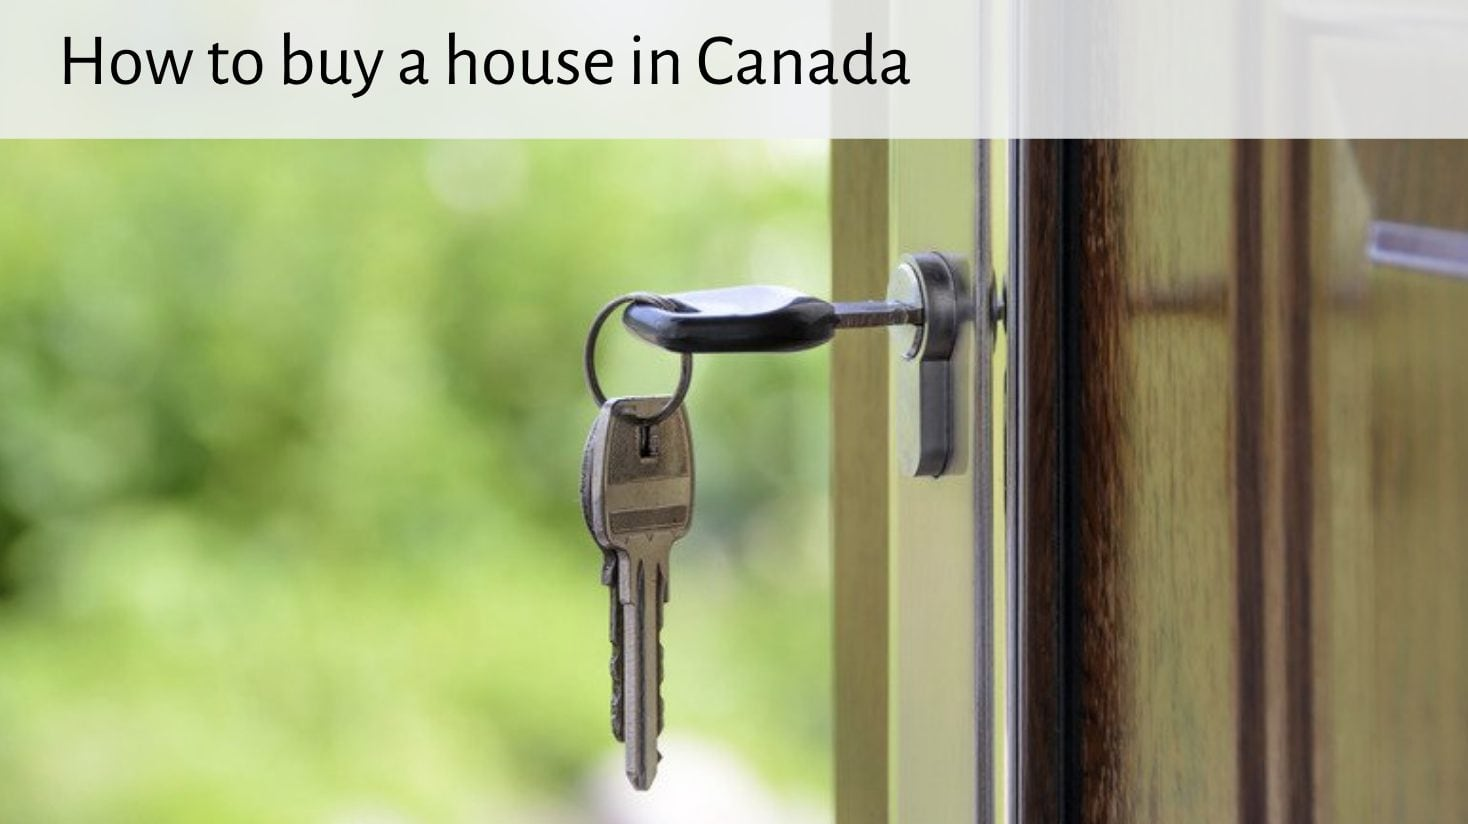 Hot topic buy a house in Canada